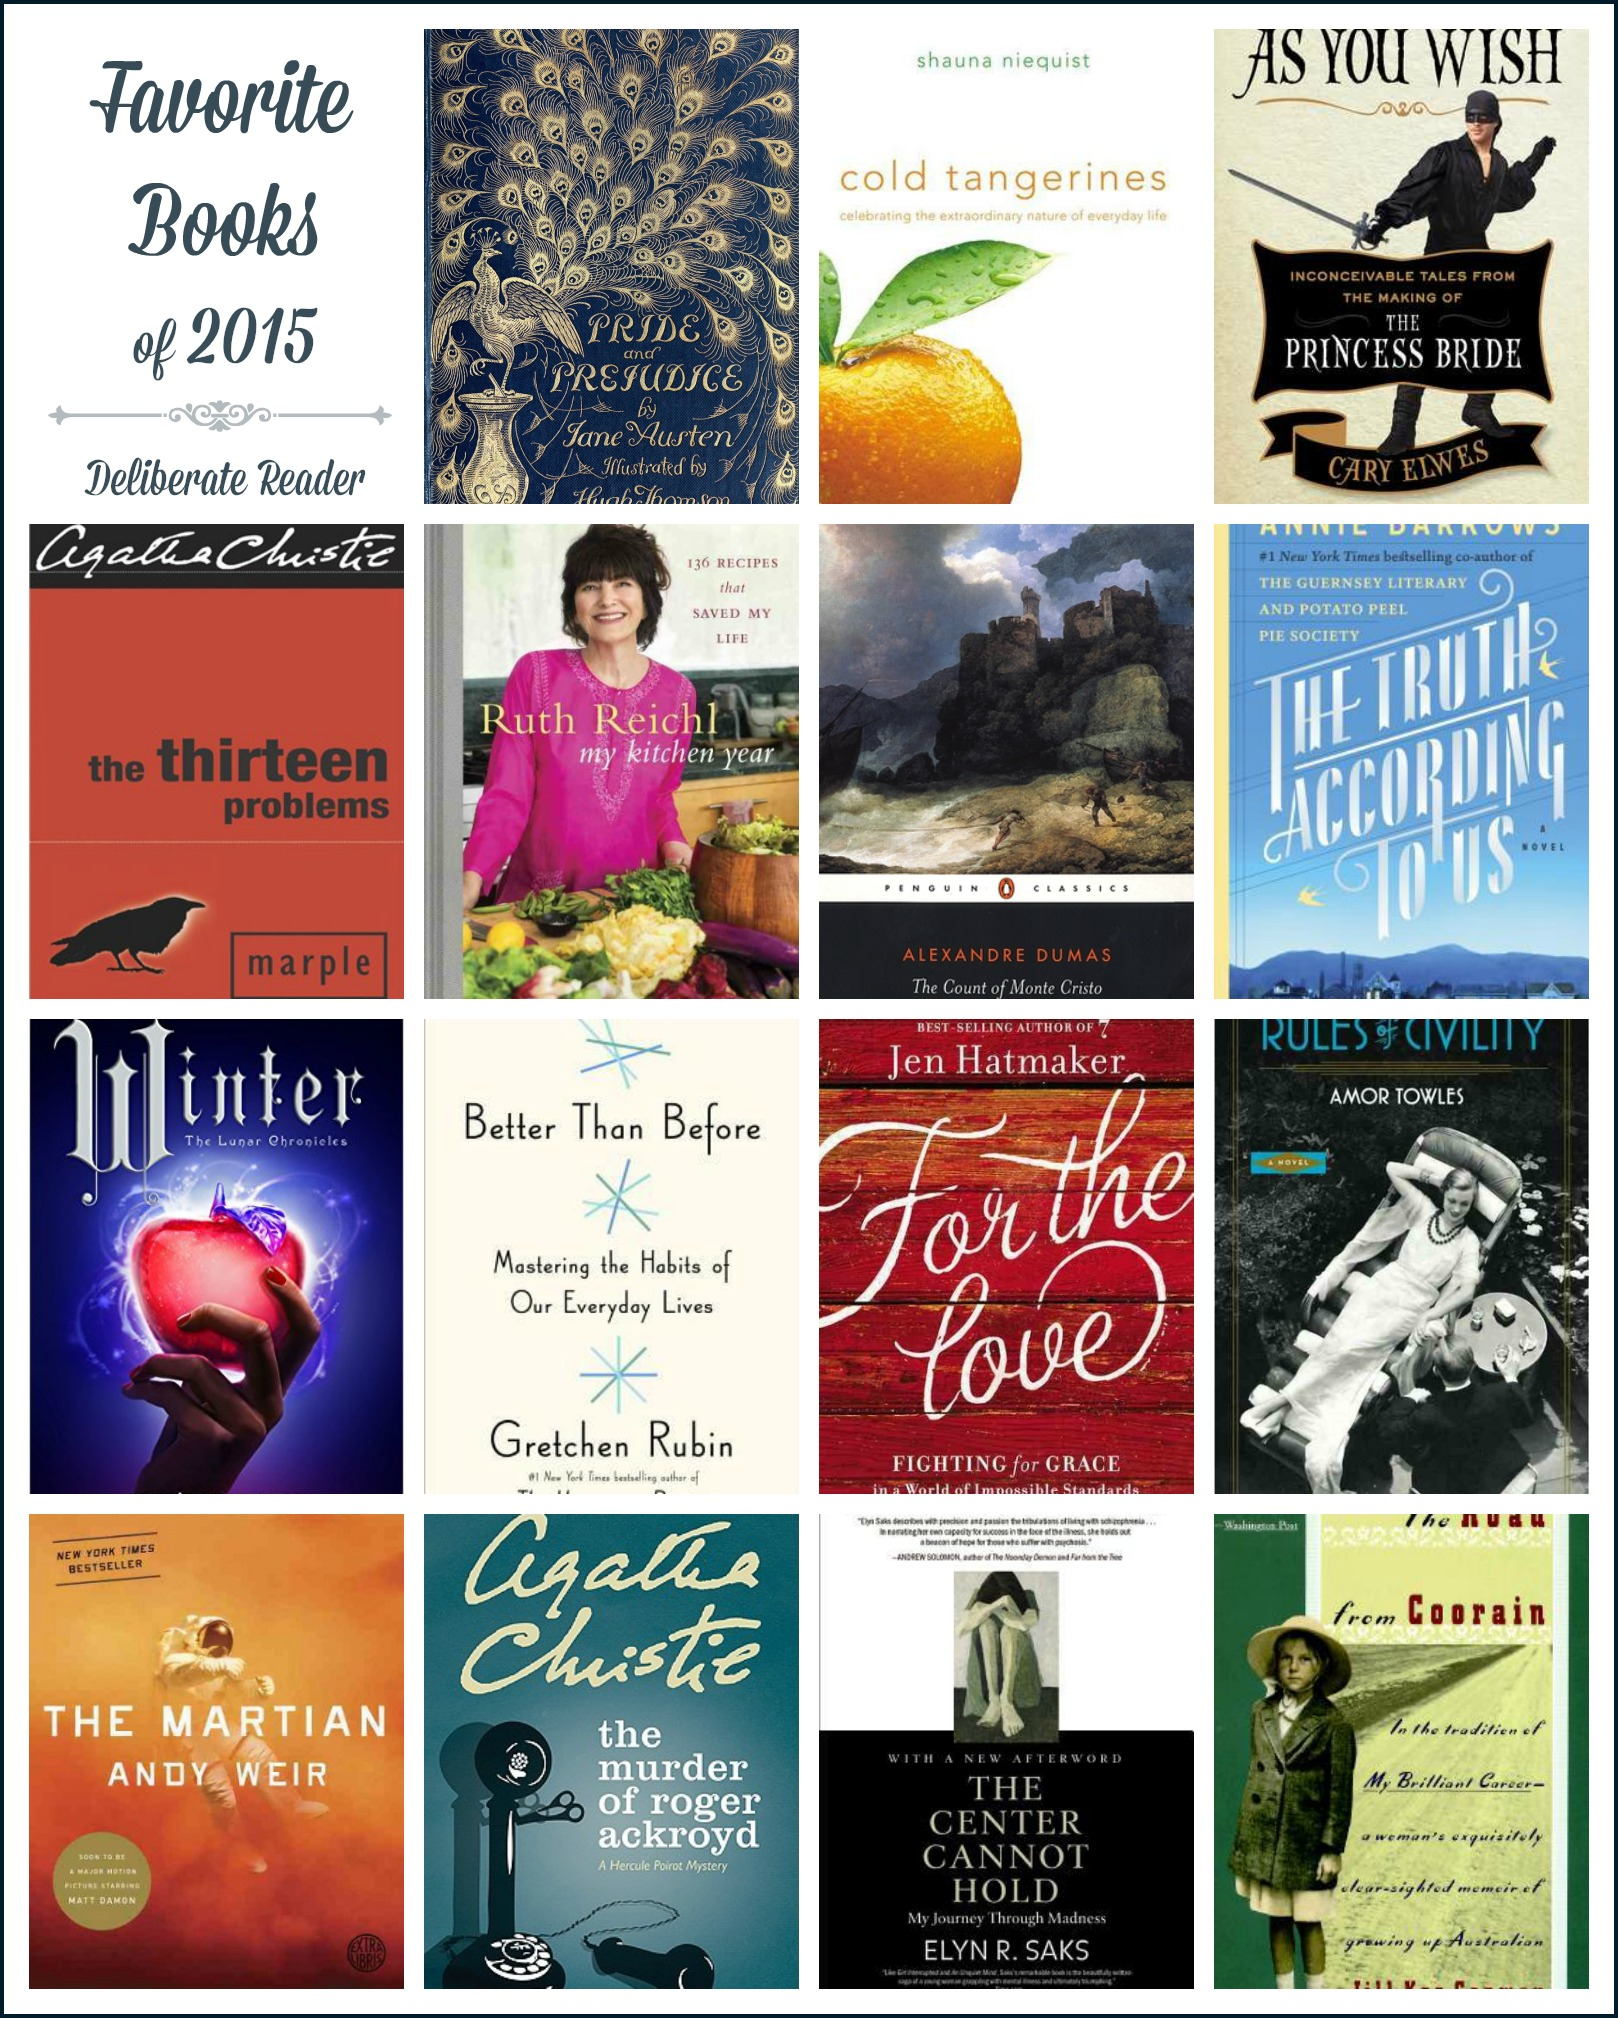 Favorite Books of 2015